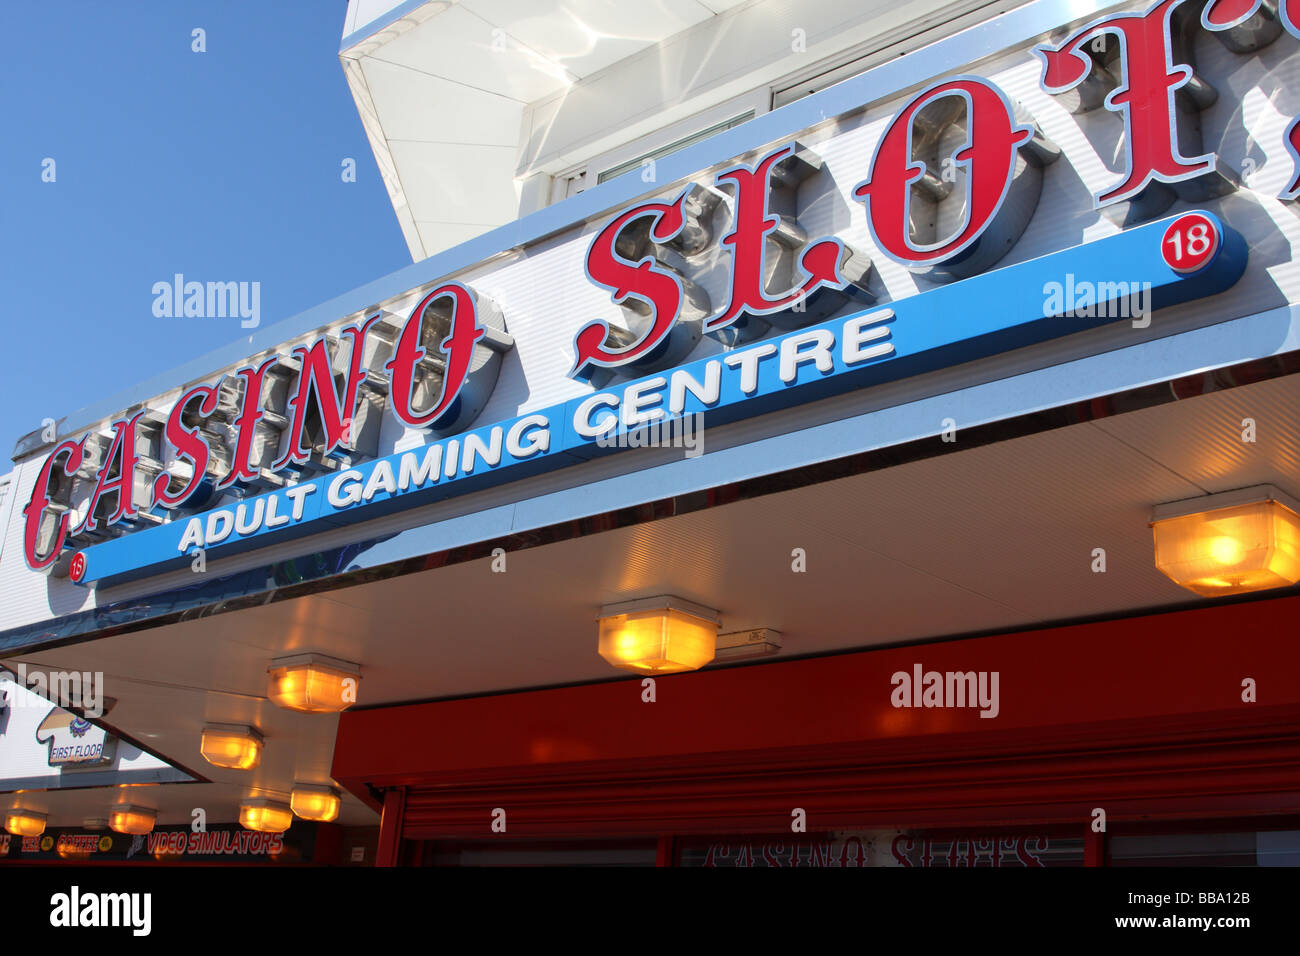 An adult amusement arcade in the U.K. - Stock Image